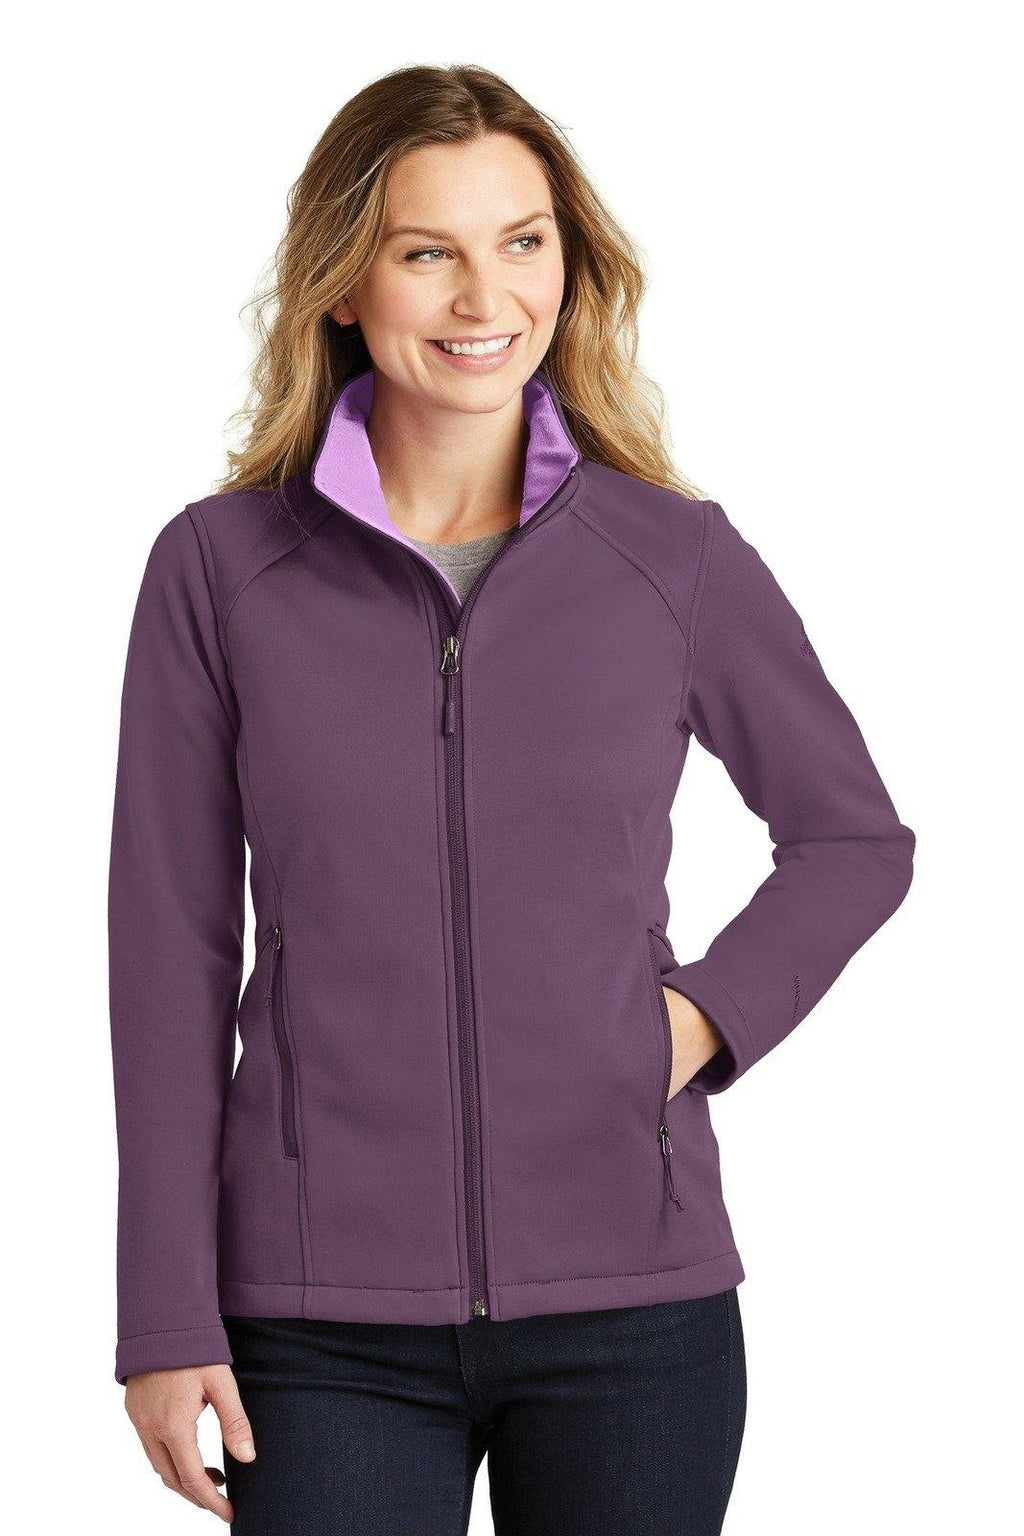 The North Face Ladies Ridgeline Soft Shell Jacket - New Age Promotions